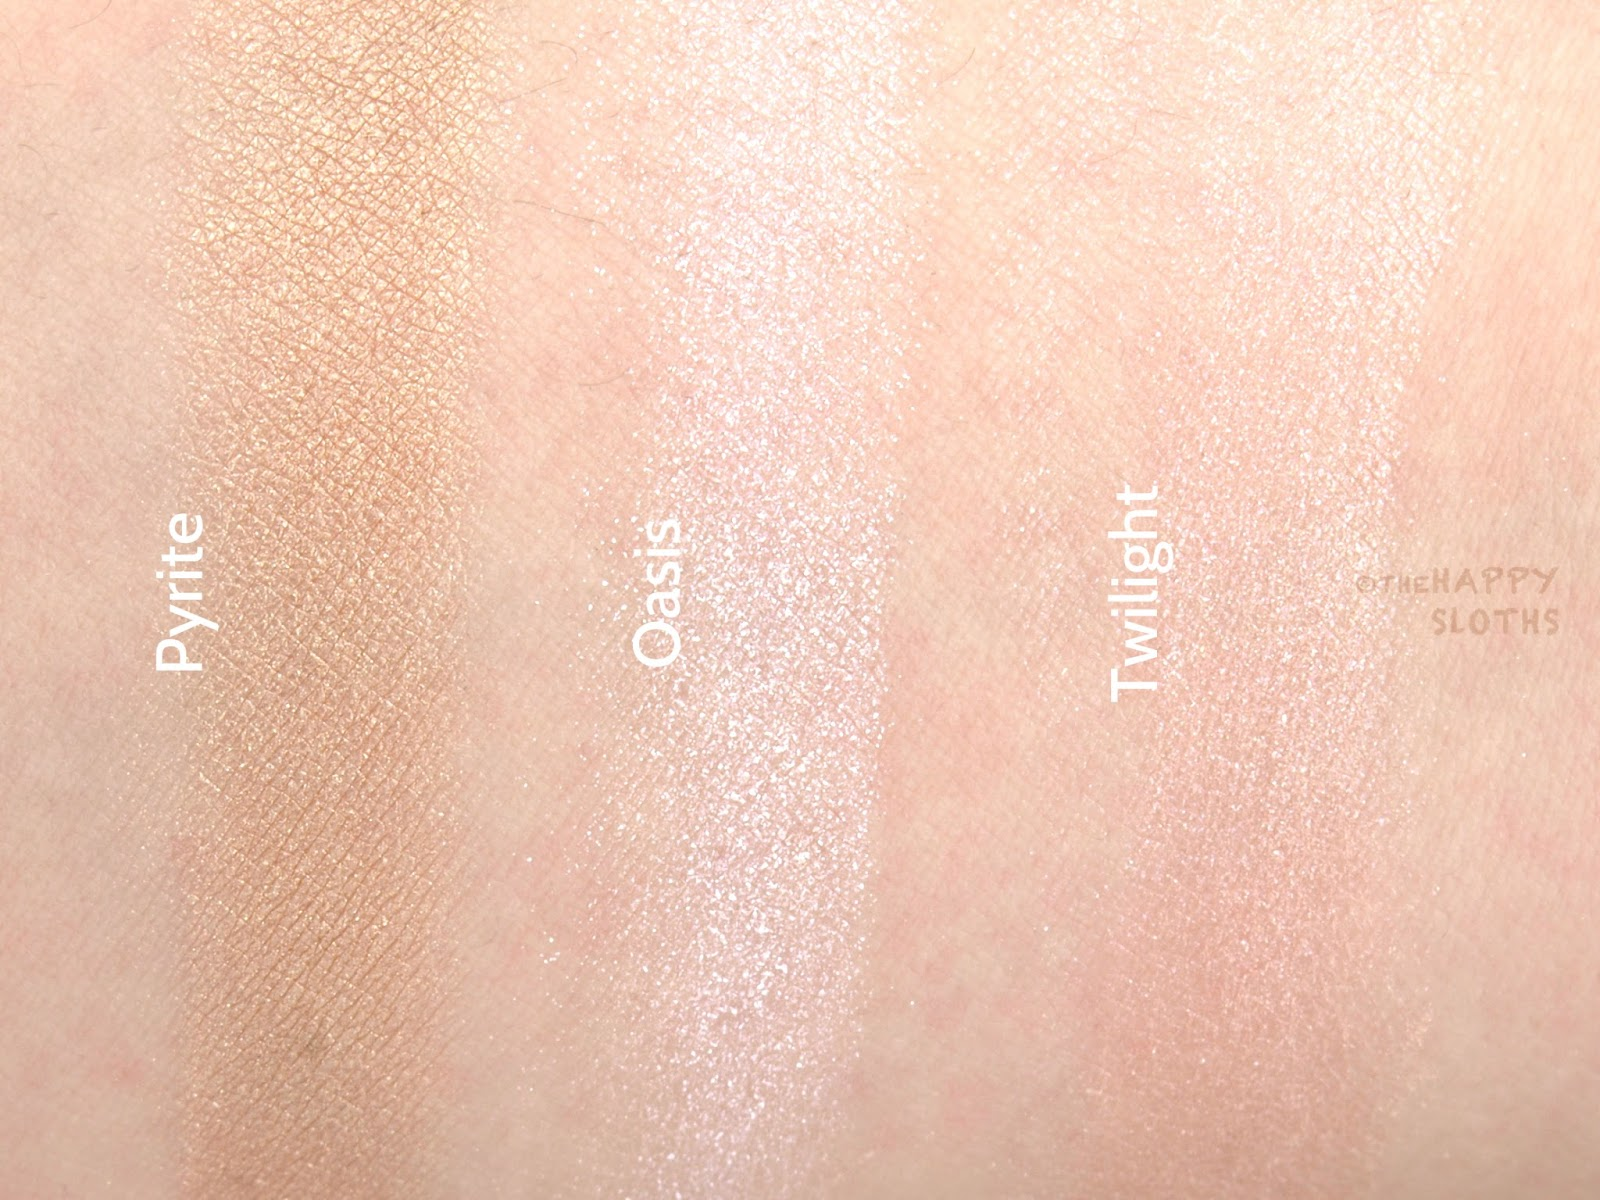 Urban Decay Naked Illuminated Trio  Review and Swatches  c8d3e78699a22